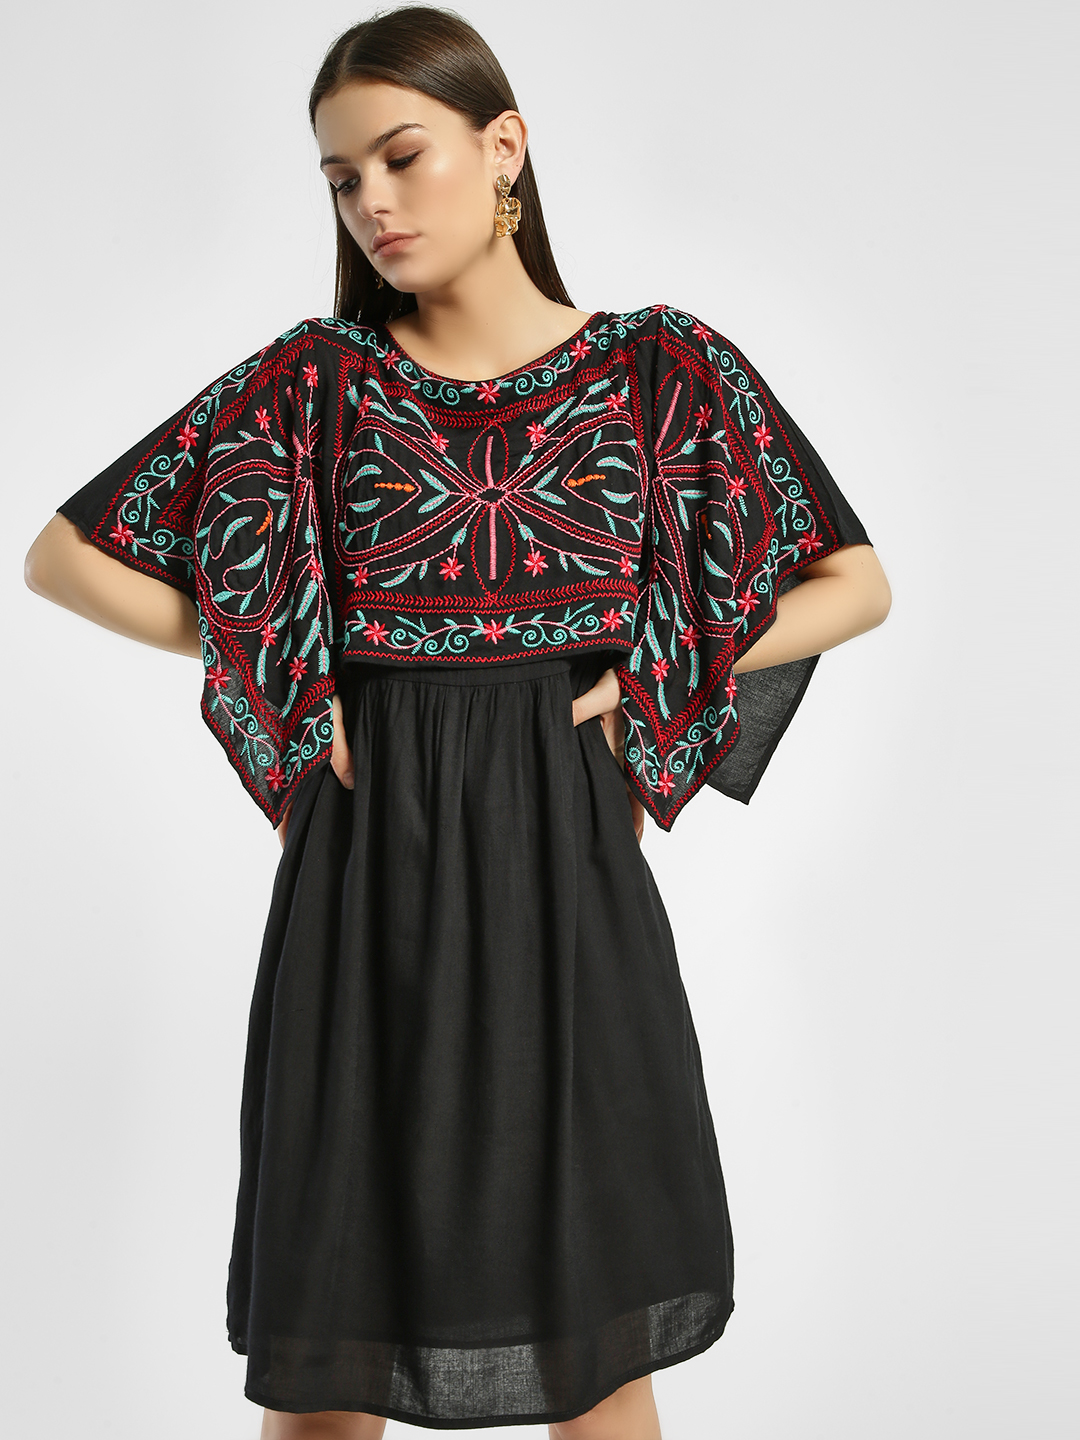 Rena Love Black Embroidered Overlay Shift Dresses 1